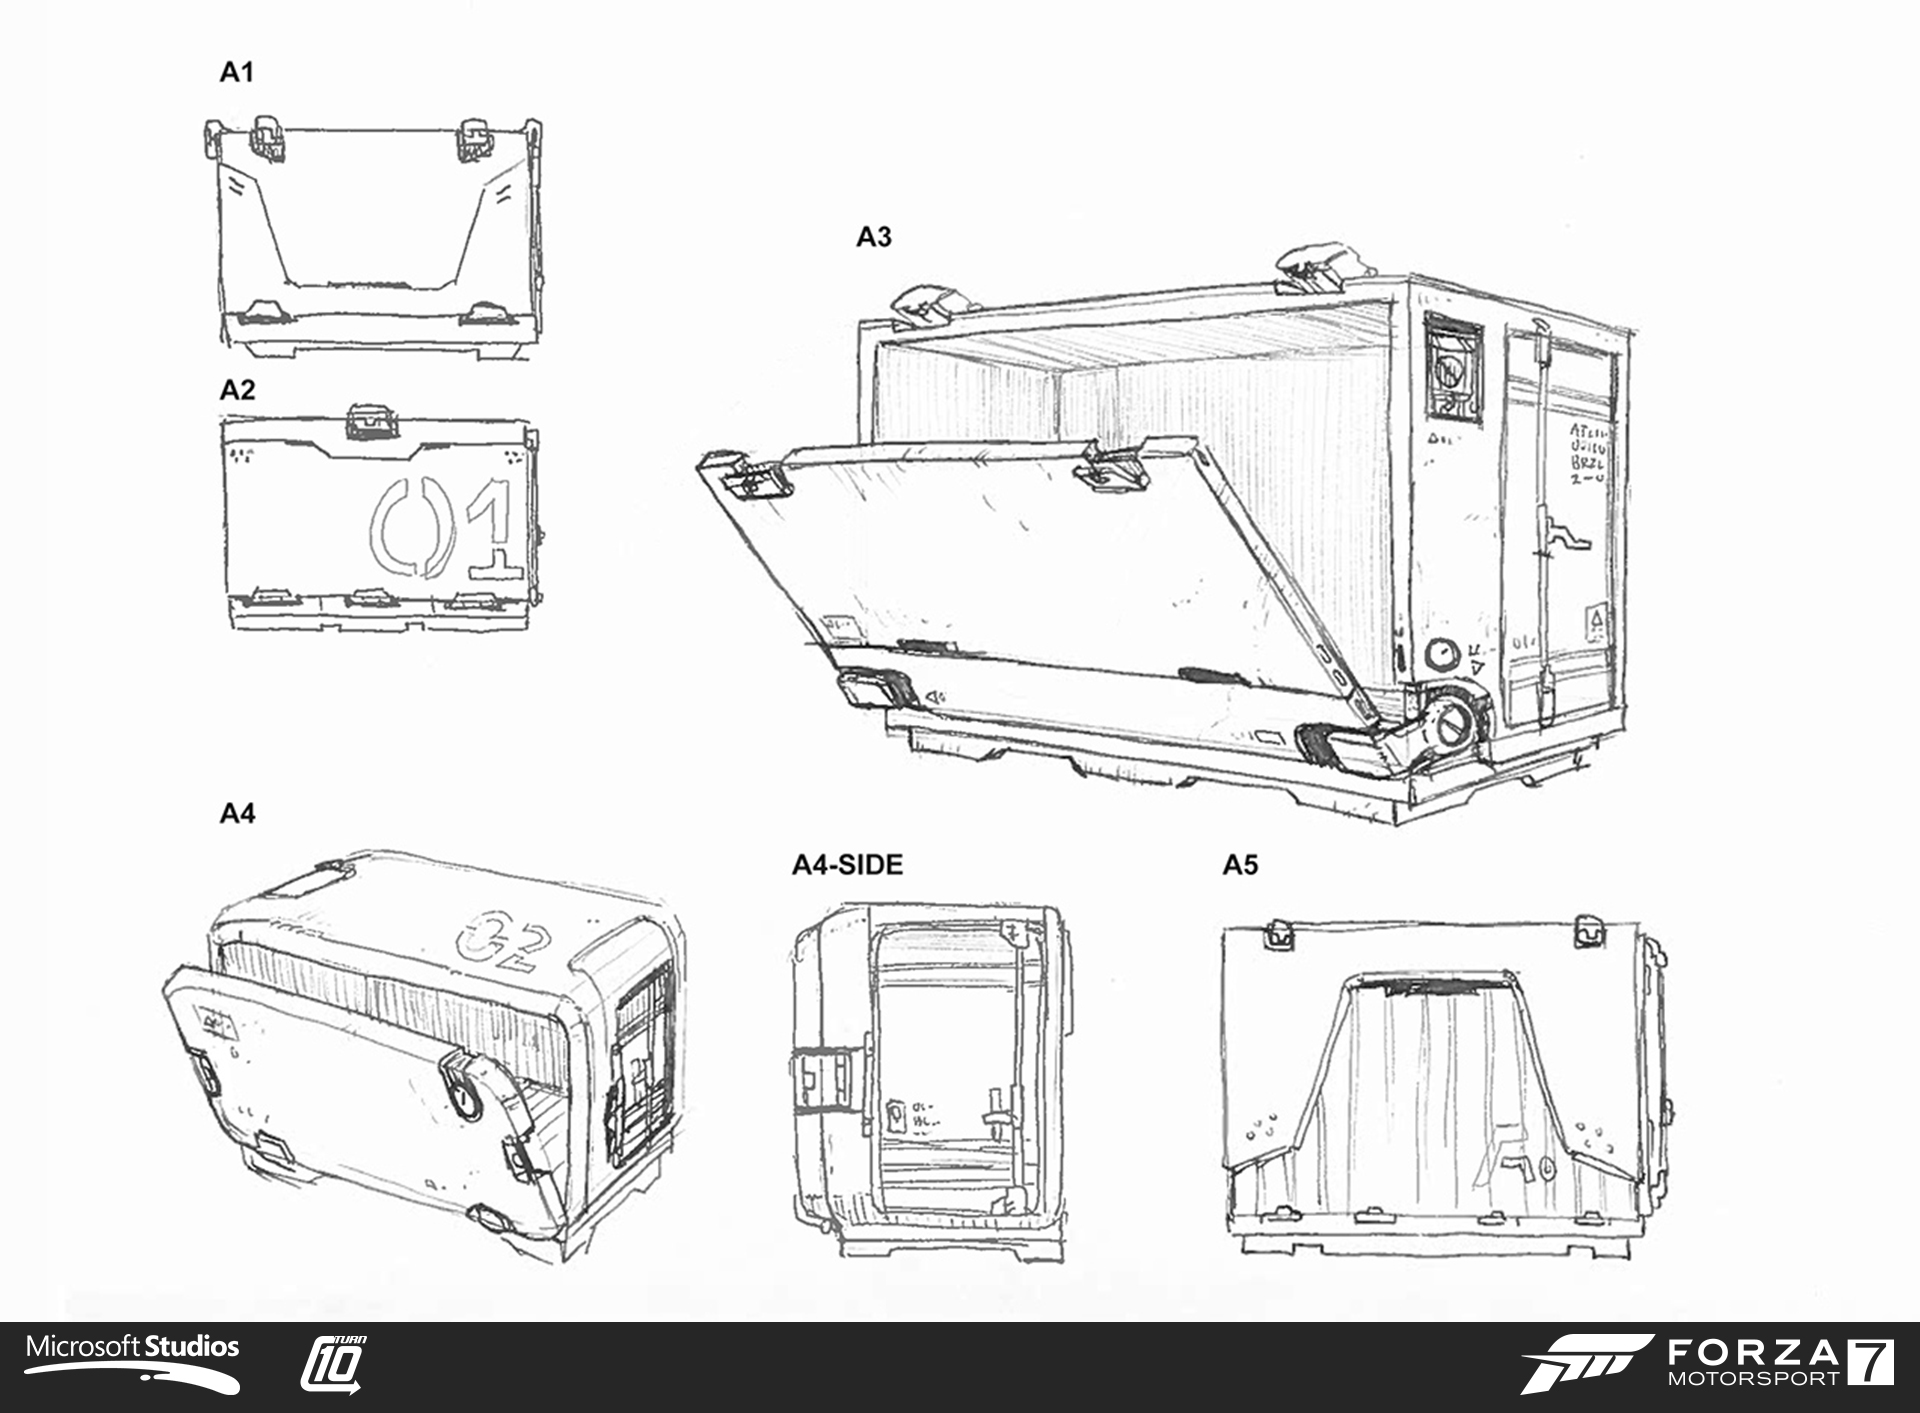 Prize crate concept sketches for Forza Motorsport 7. I concepted, modeled, textured and animated the crate. Art direction from David Heutmaker, Nic Johnson and Scott Lee.